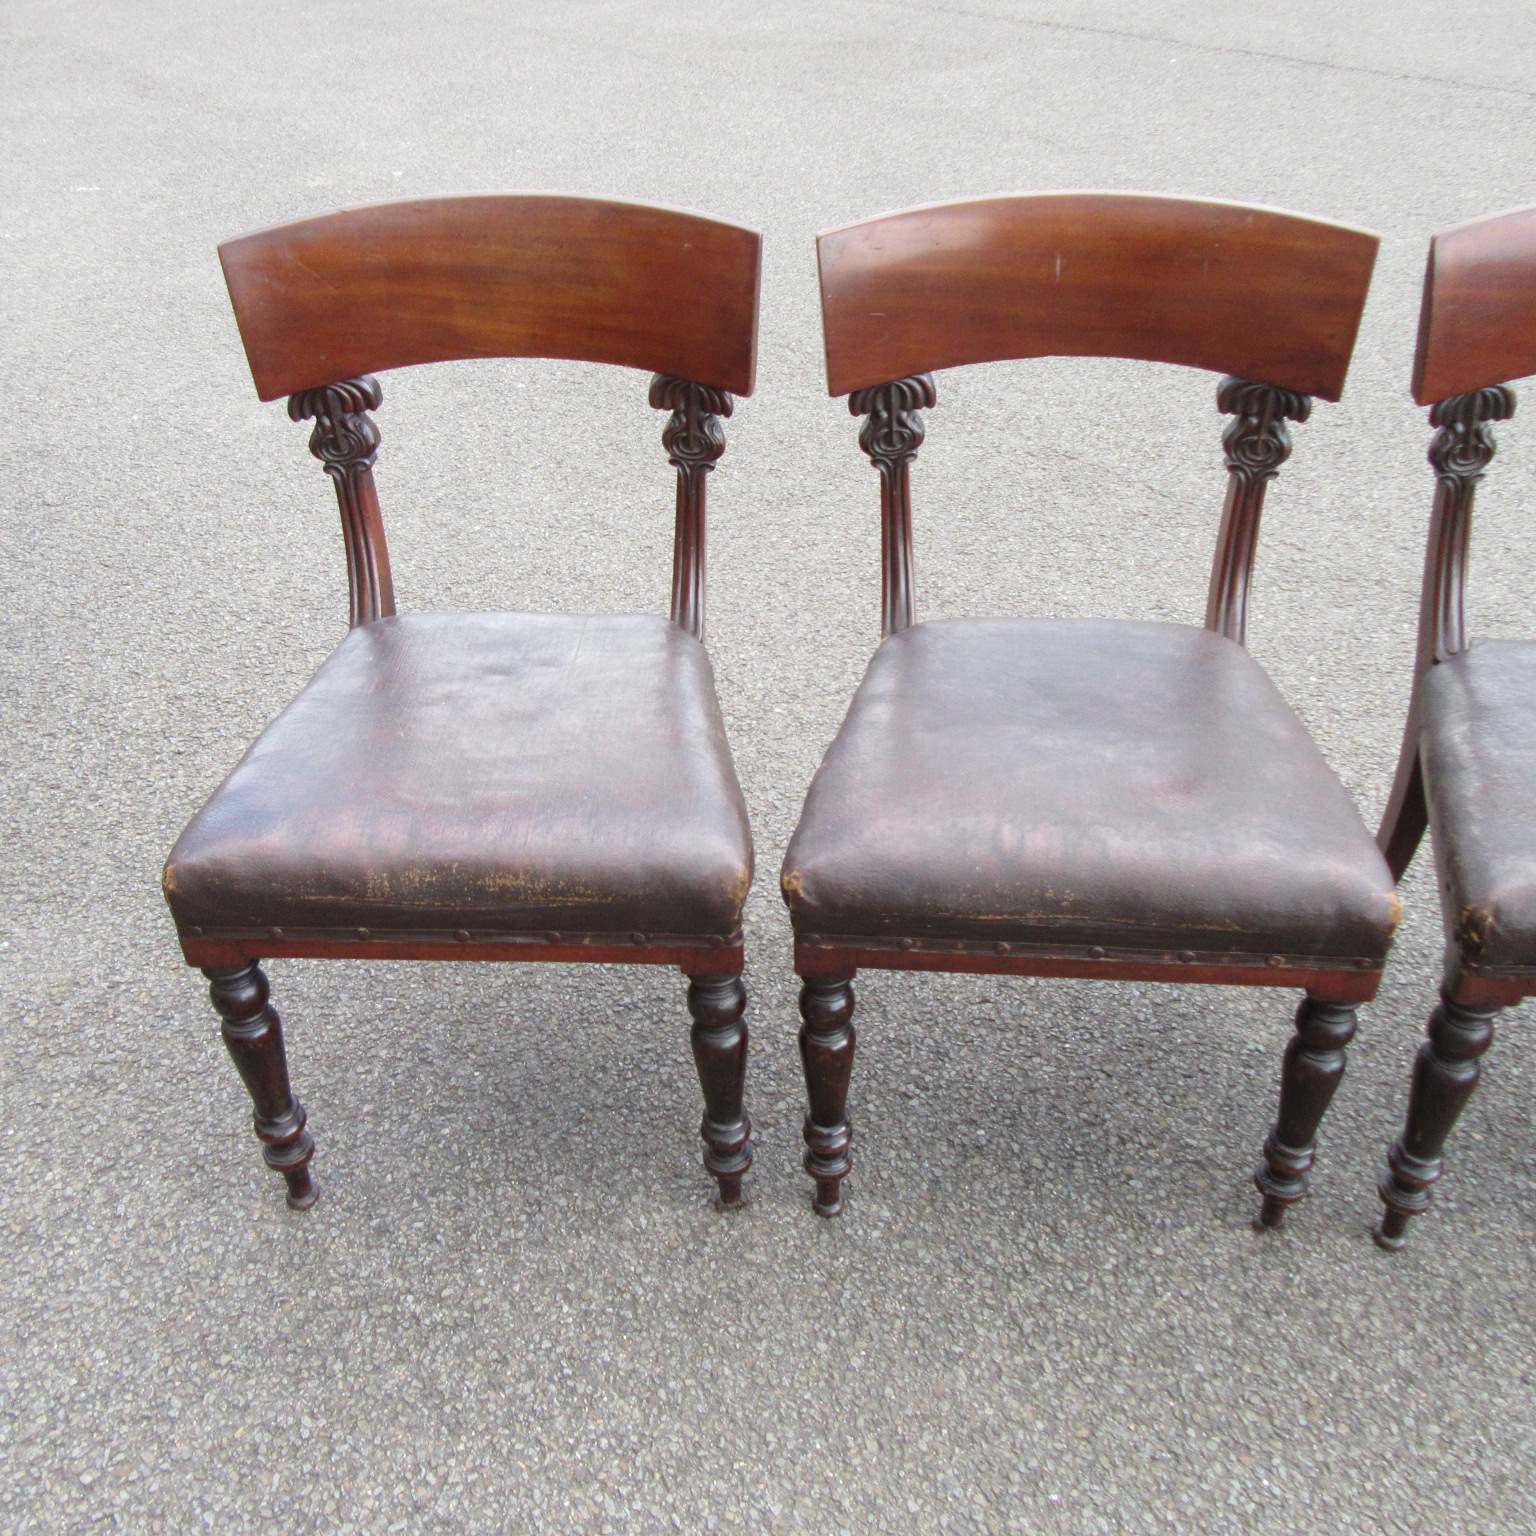 SET OF FOUR ANTIQUE EARLY VICTORIAN MAHOGANY DINING CHAIRS Eras